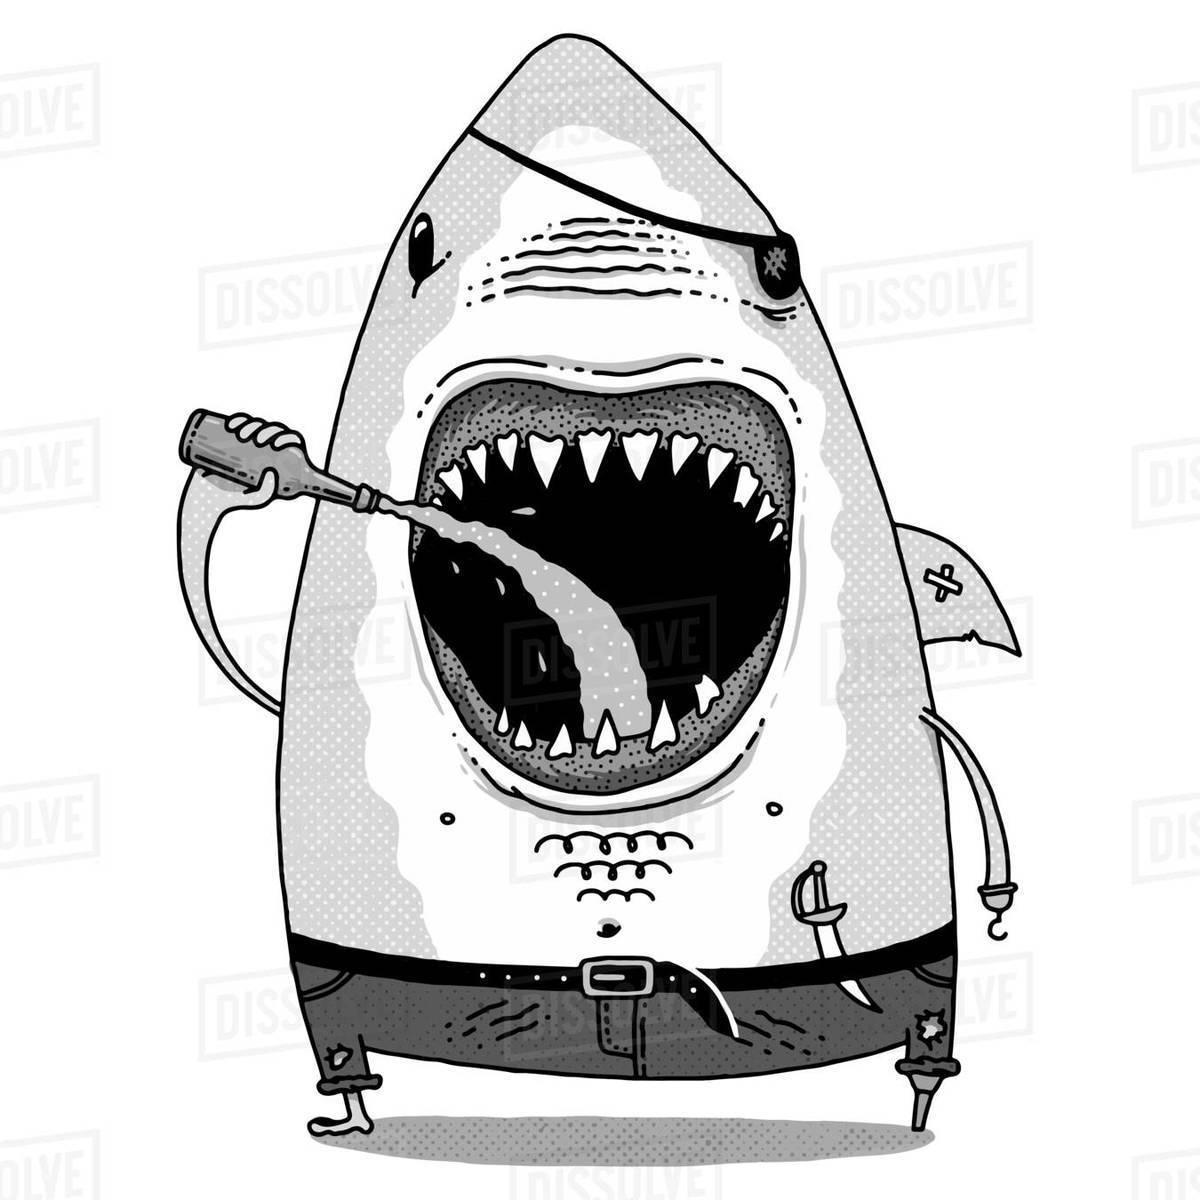 Cartoon illustration of a shark drinking beer against white background Royalty-free stock photo